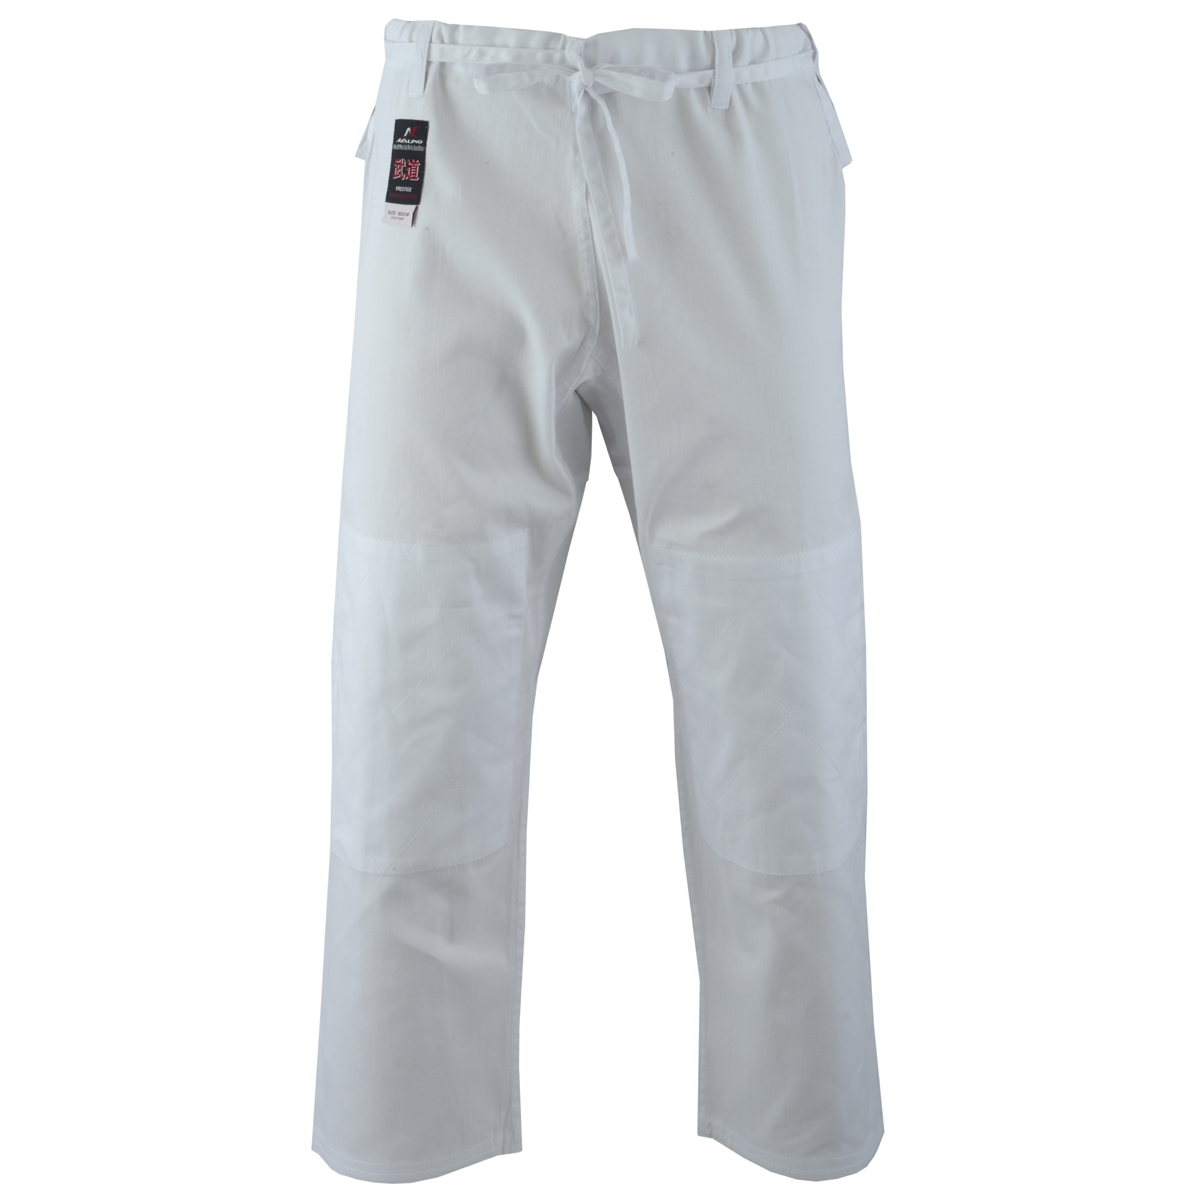 Malino Adult Student Judo Trousers Lightweight Cotton White - 7oz